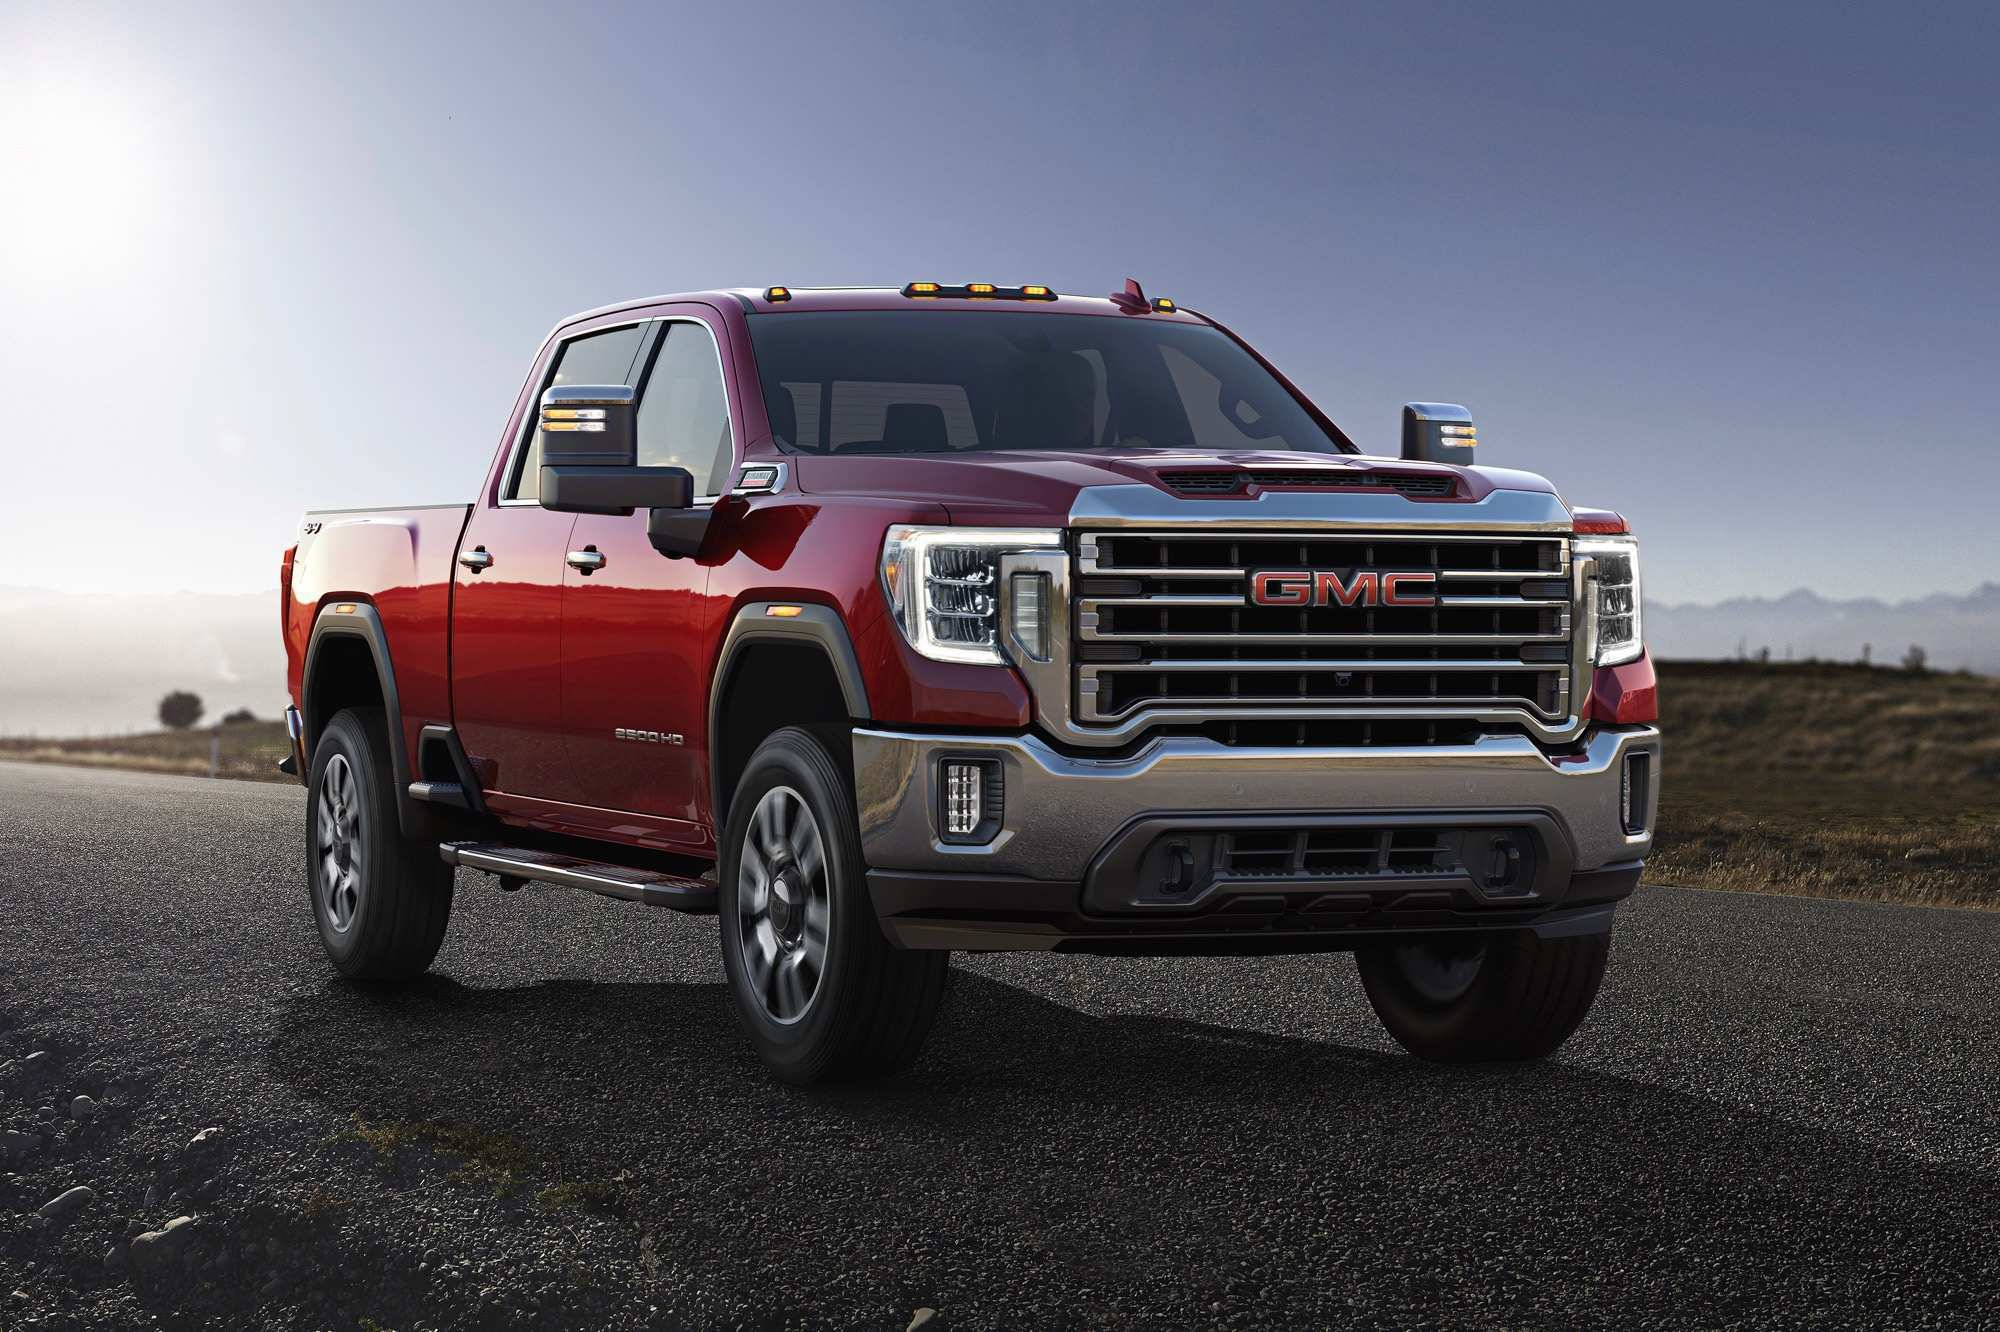 33 New GMC Pickup 2020 Price Design And Review